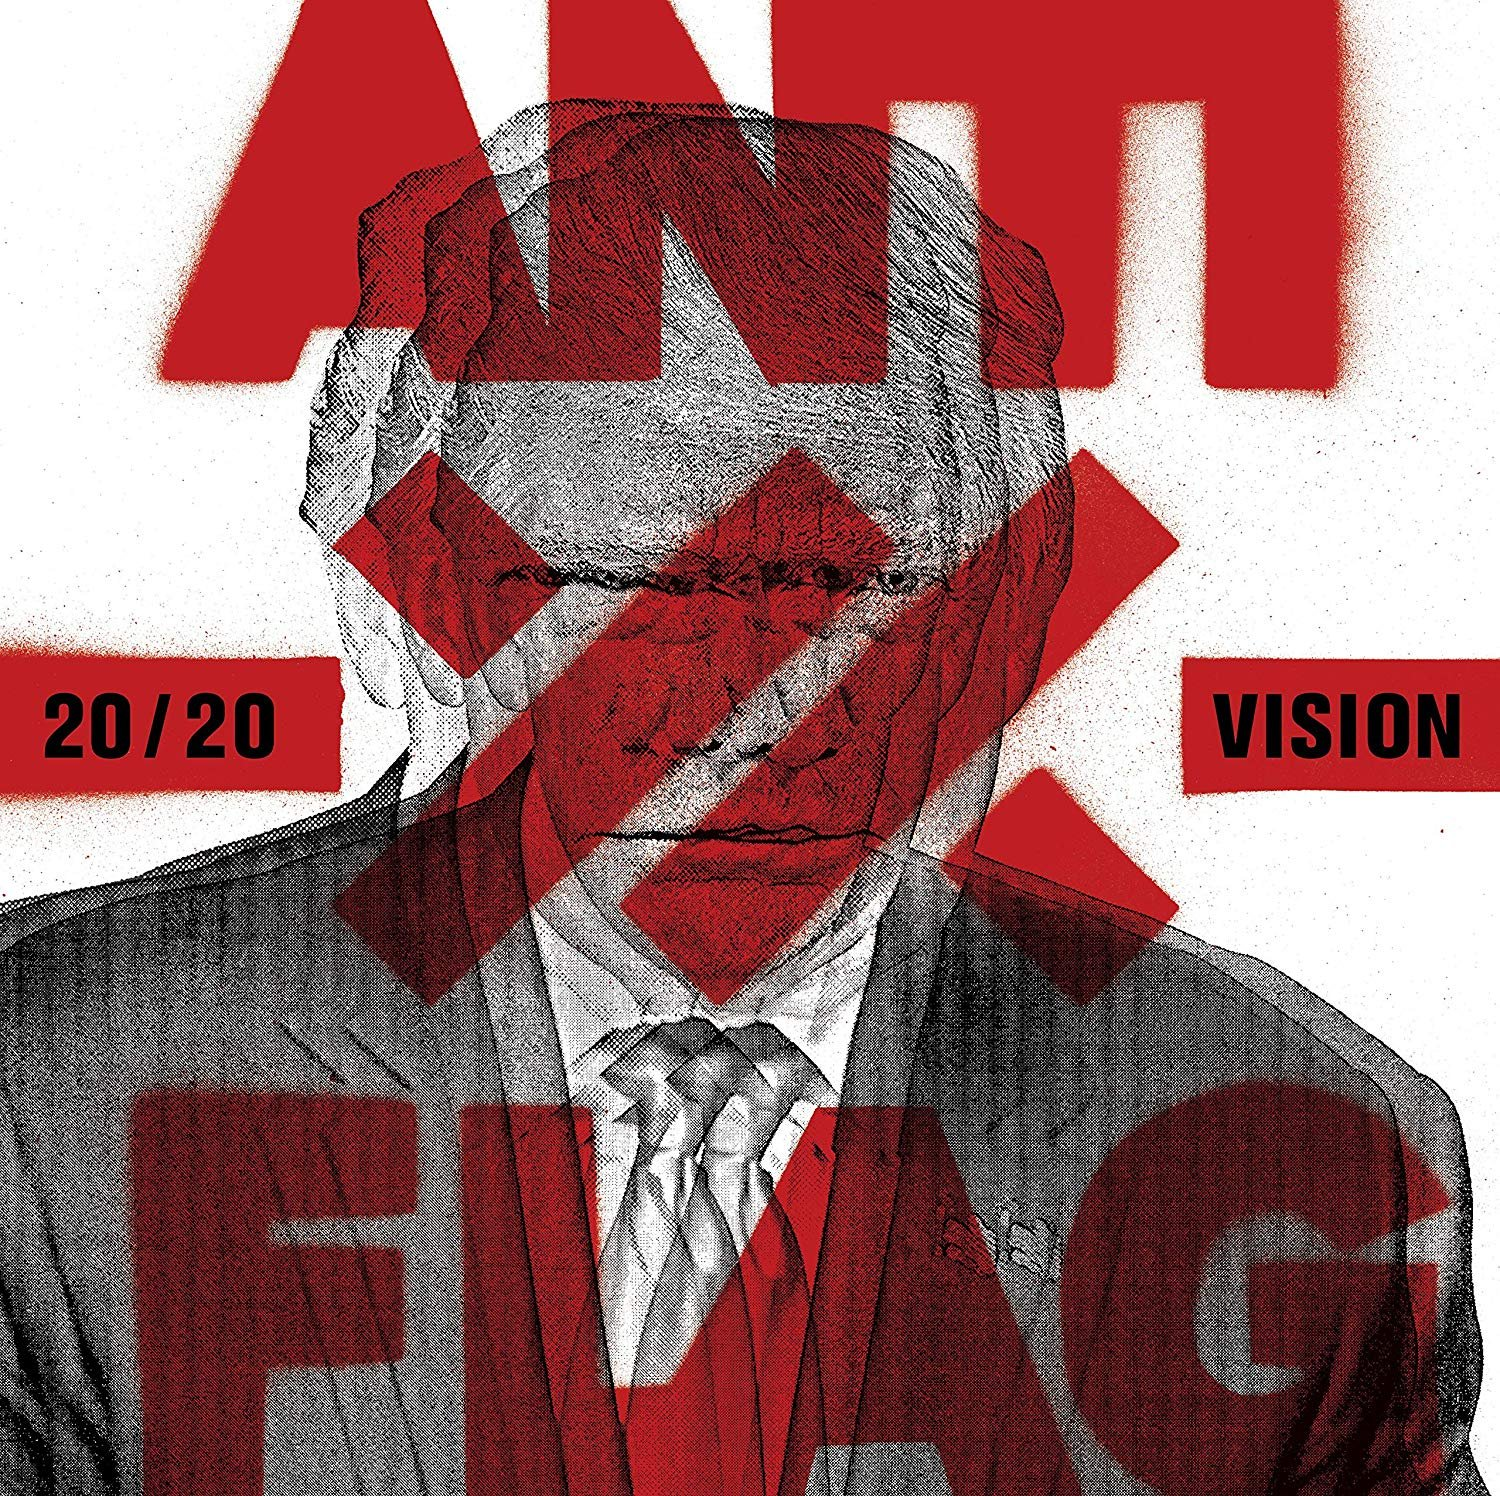 Poster for 2020 Vision